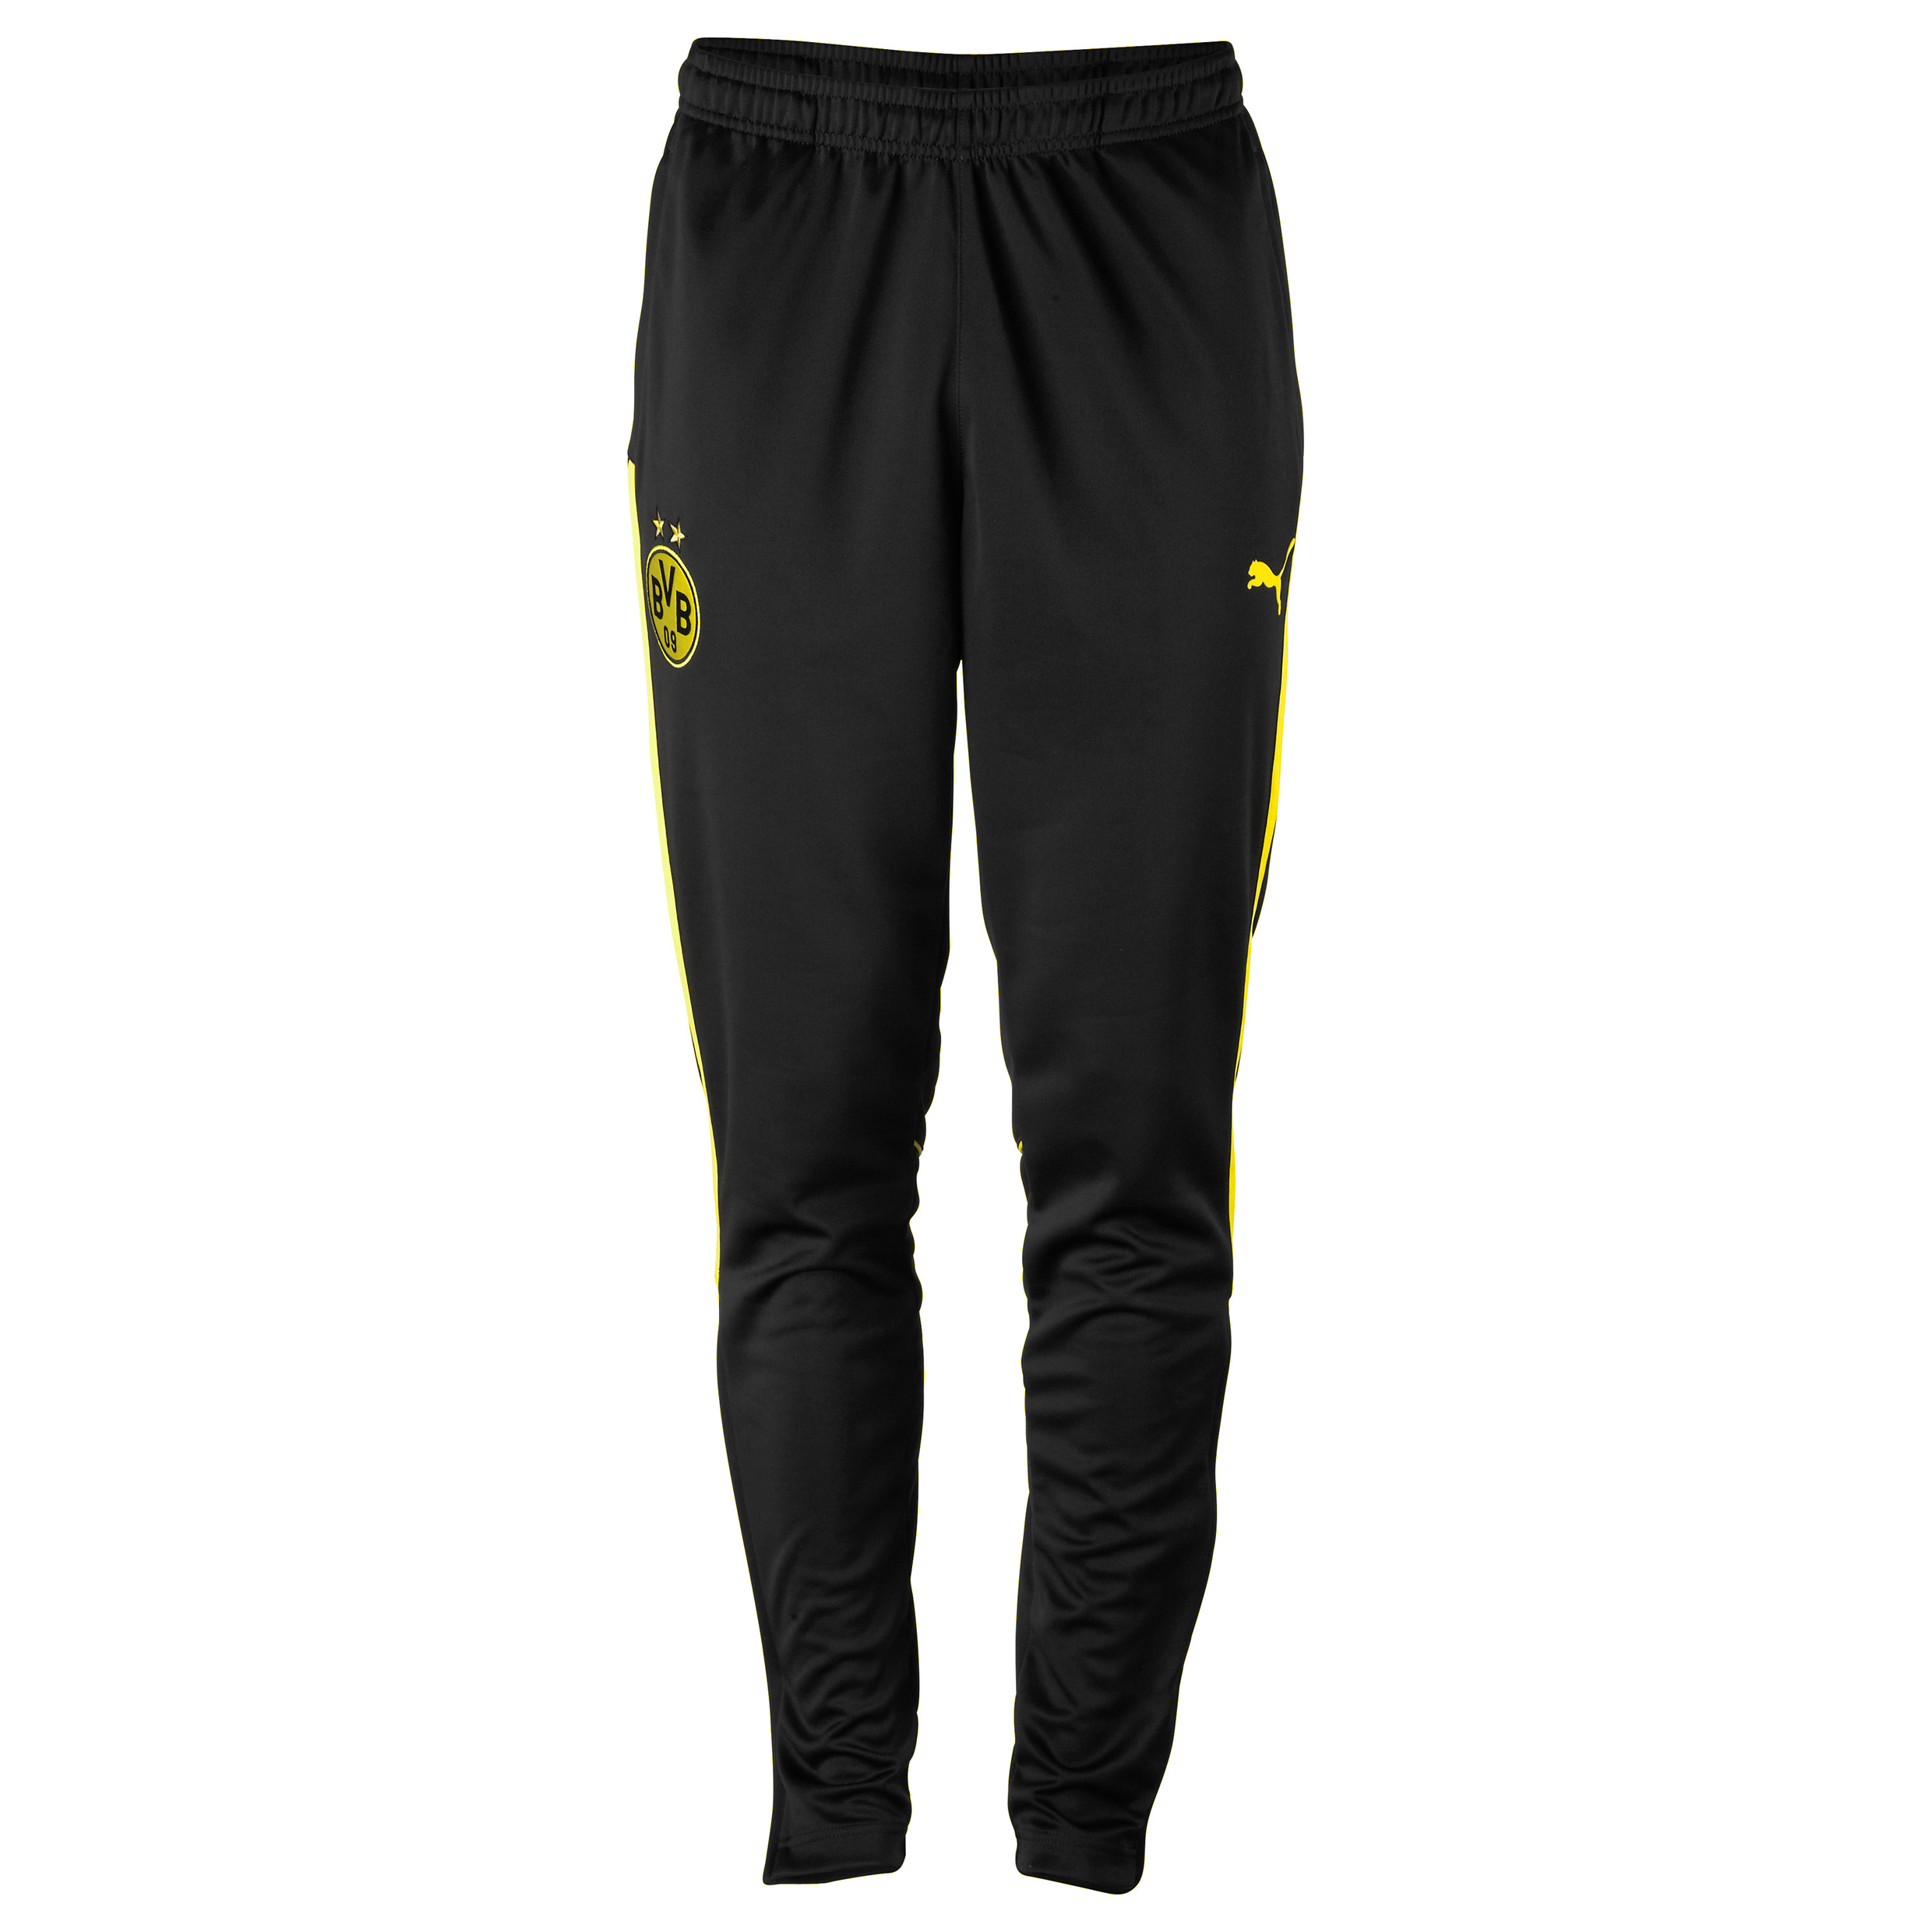 BVB Training Pant